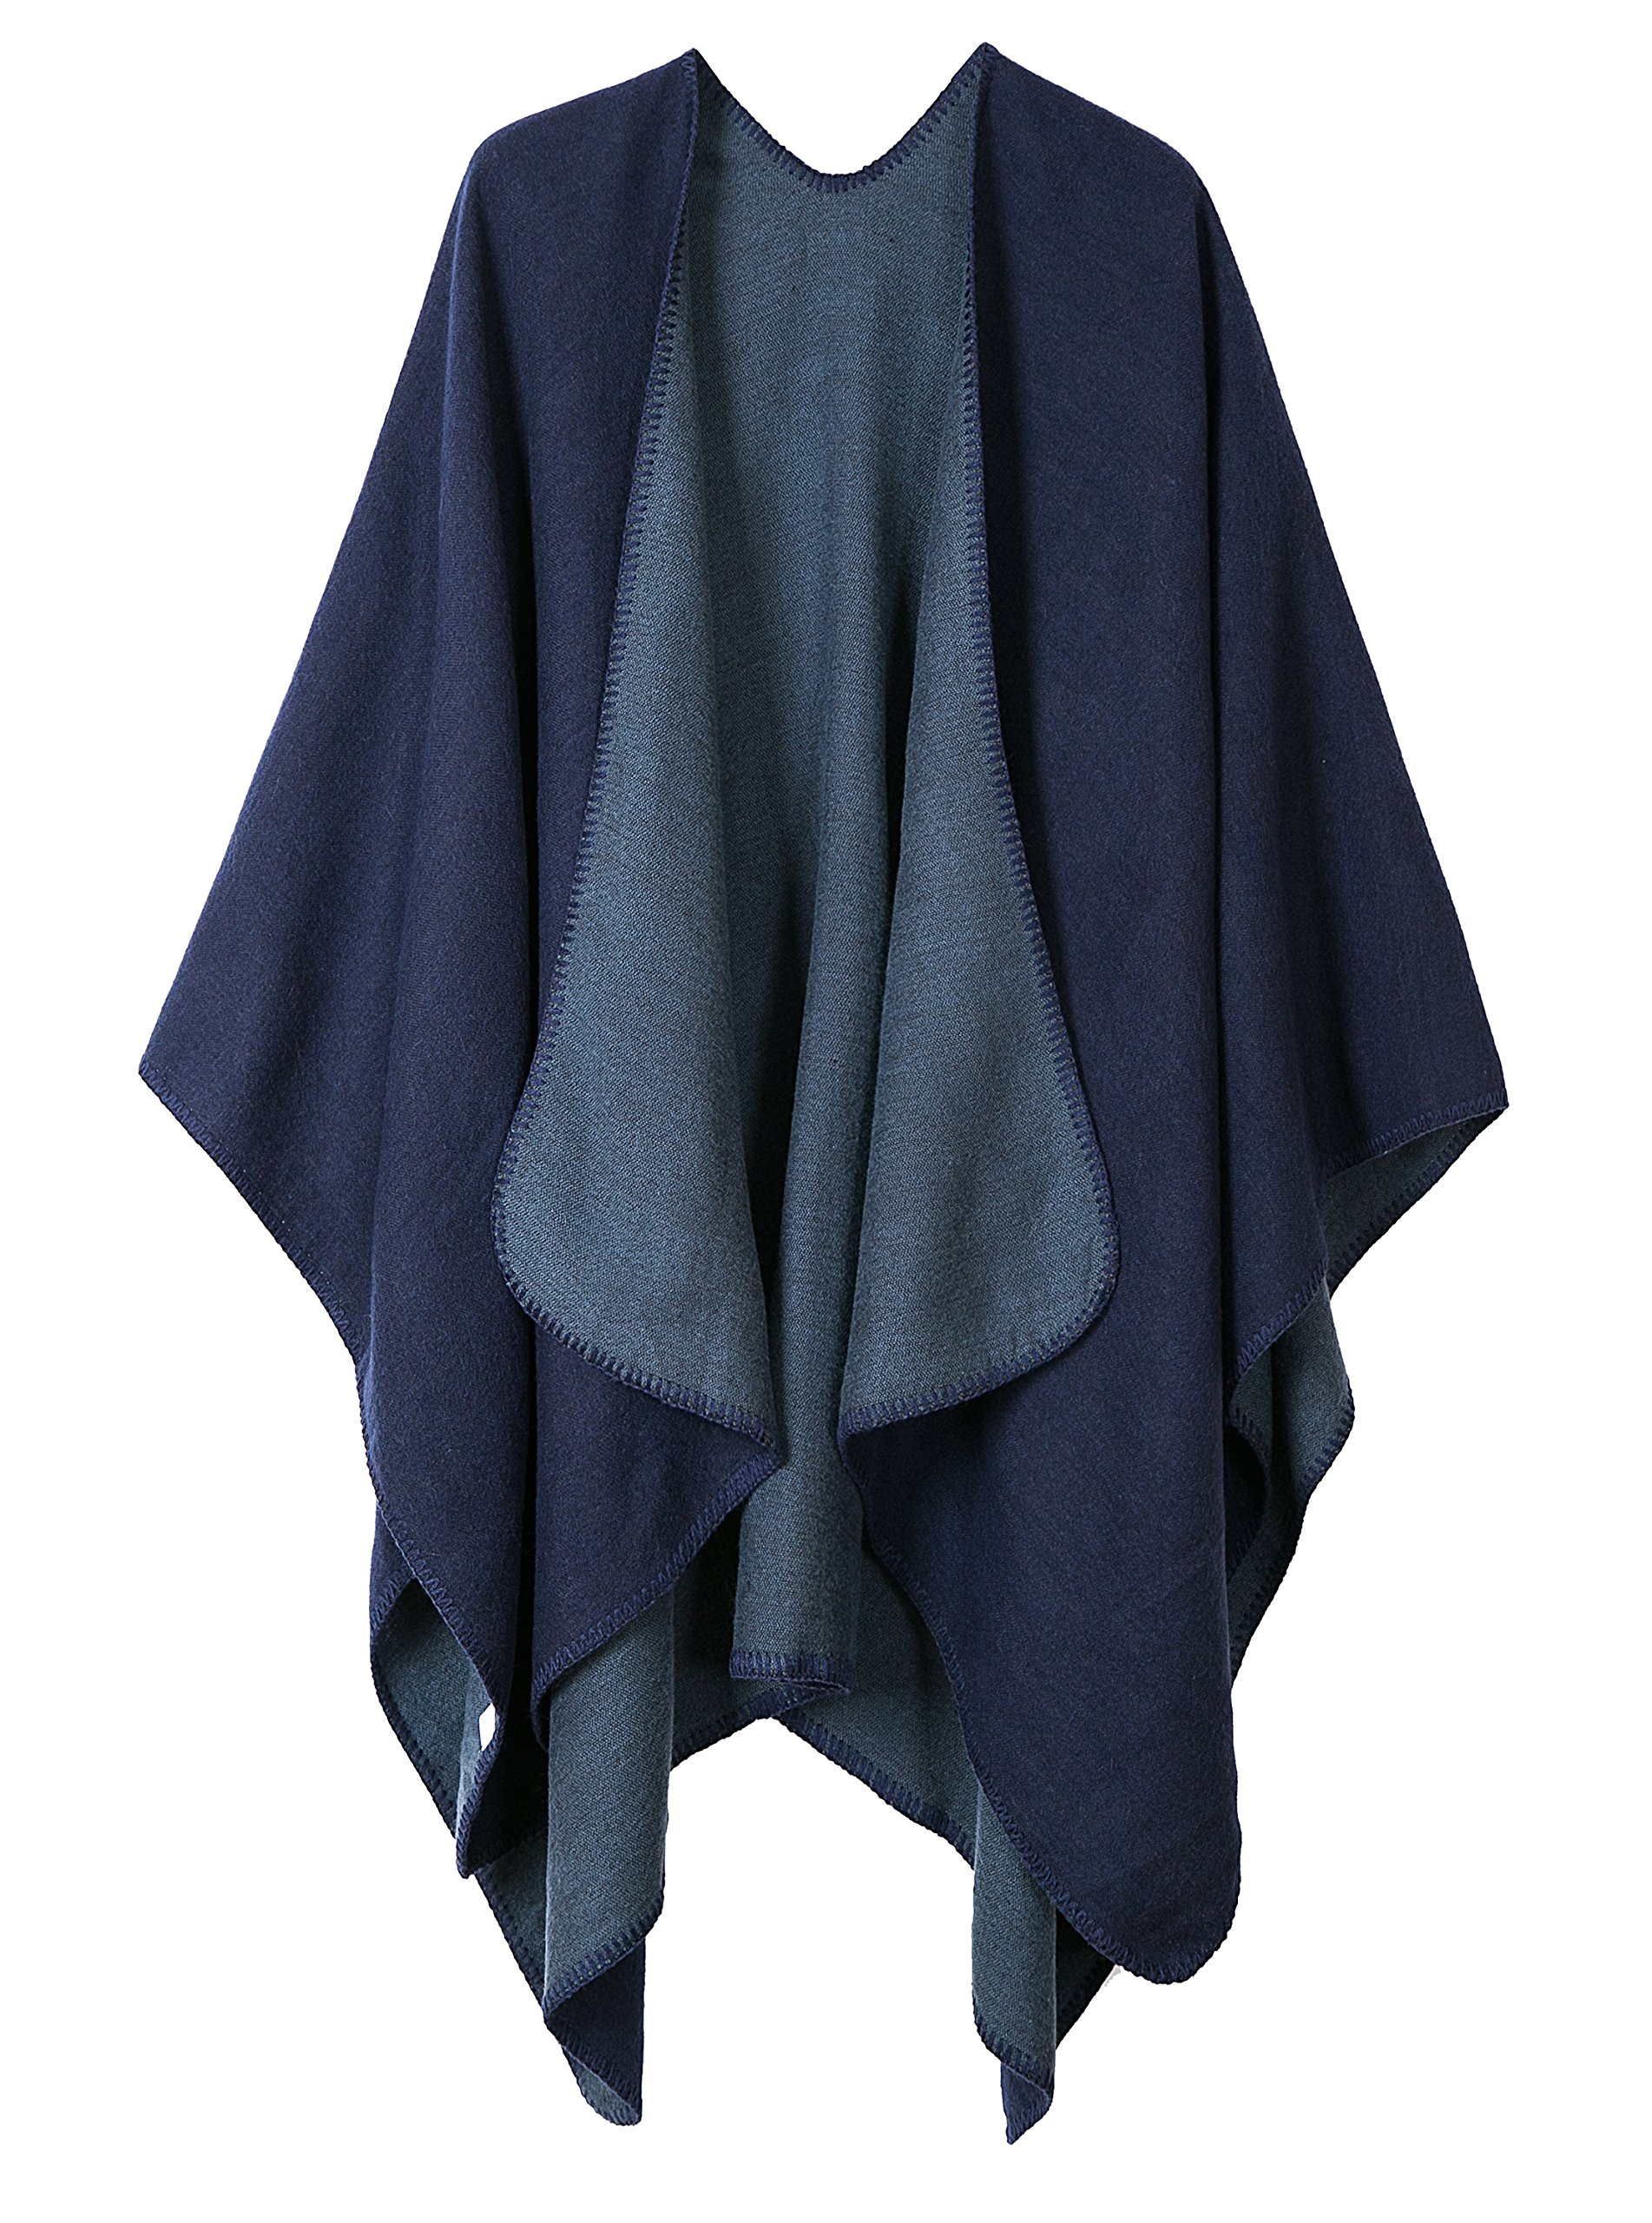 Urban CoCo Women's Color Block Shawl Wrap Open Front Poncho Cape (Series 7-navy blue)